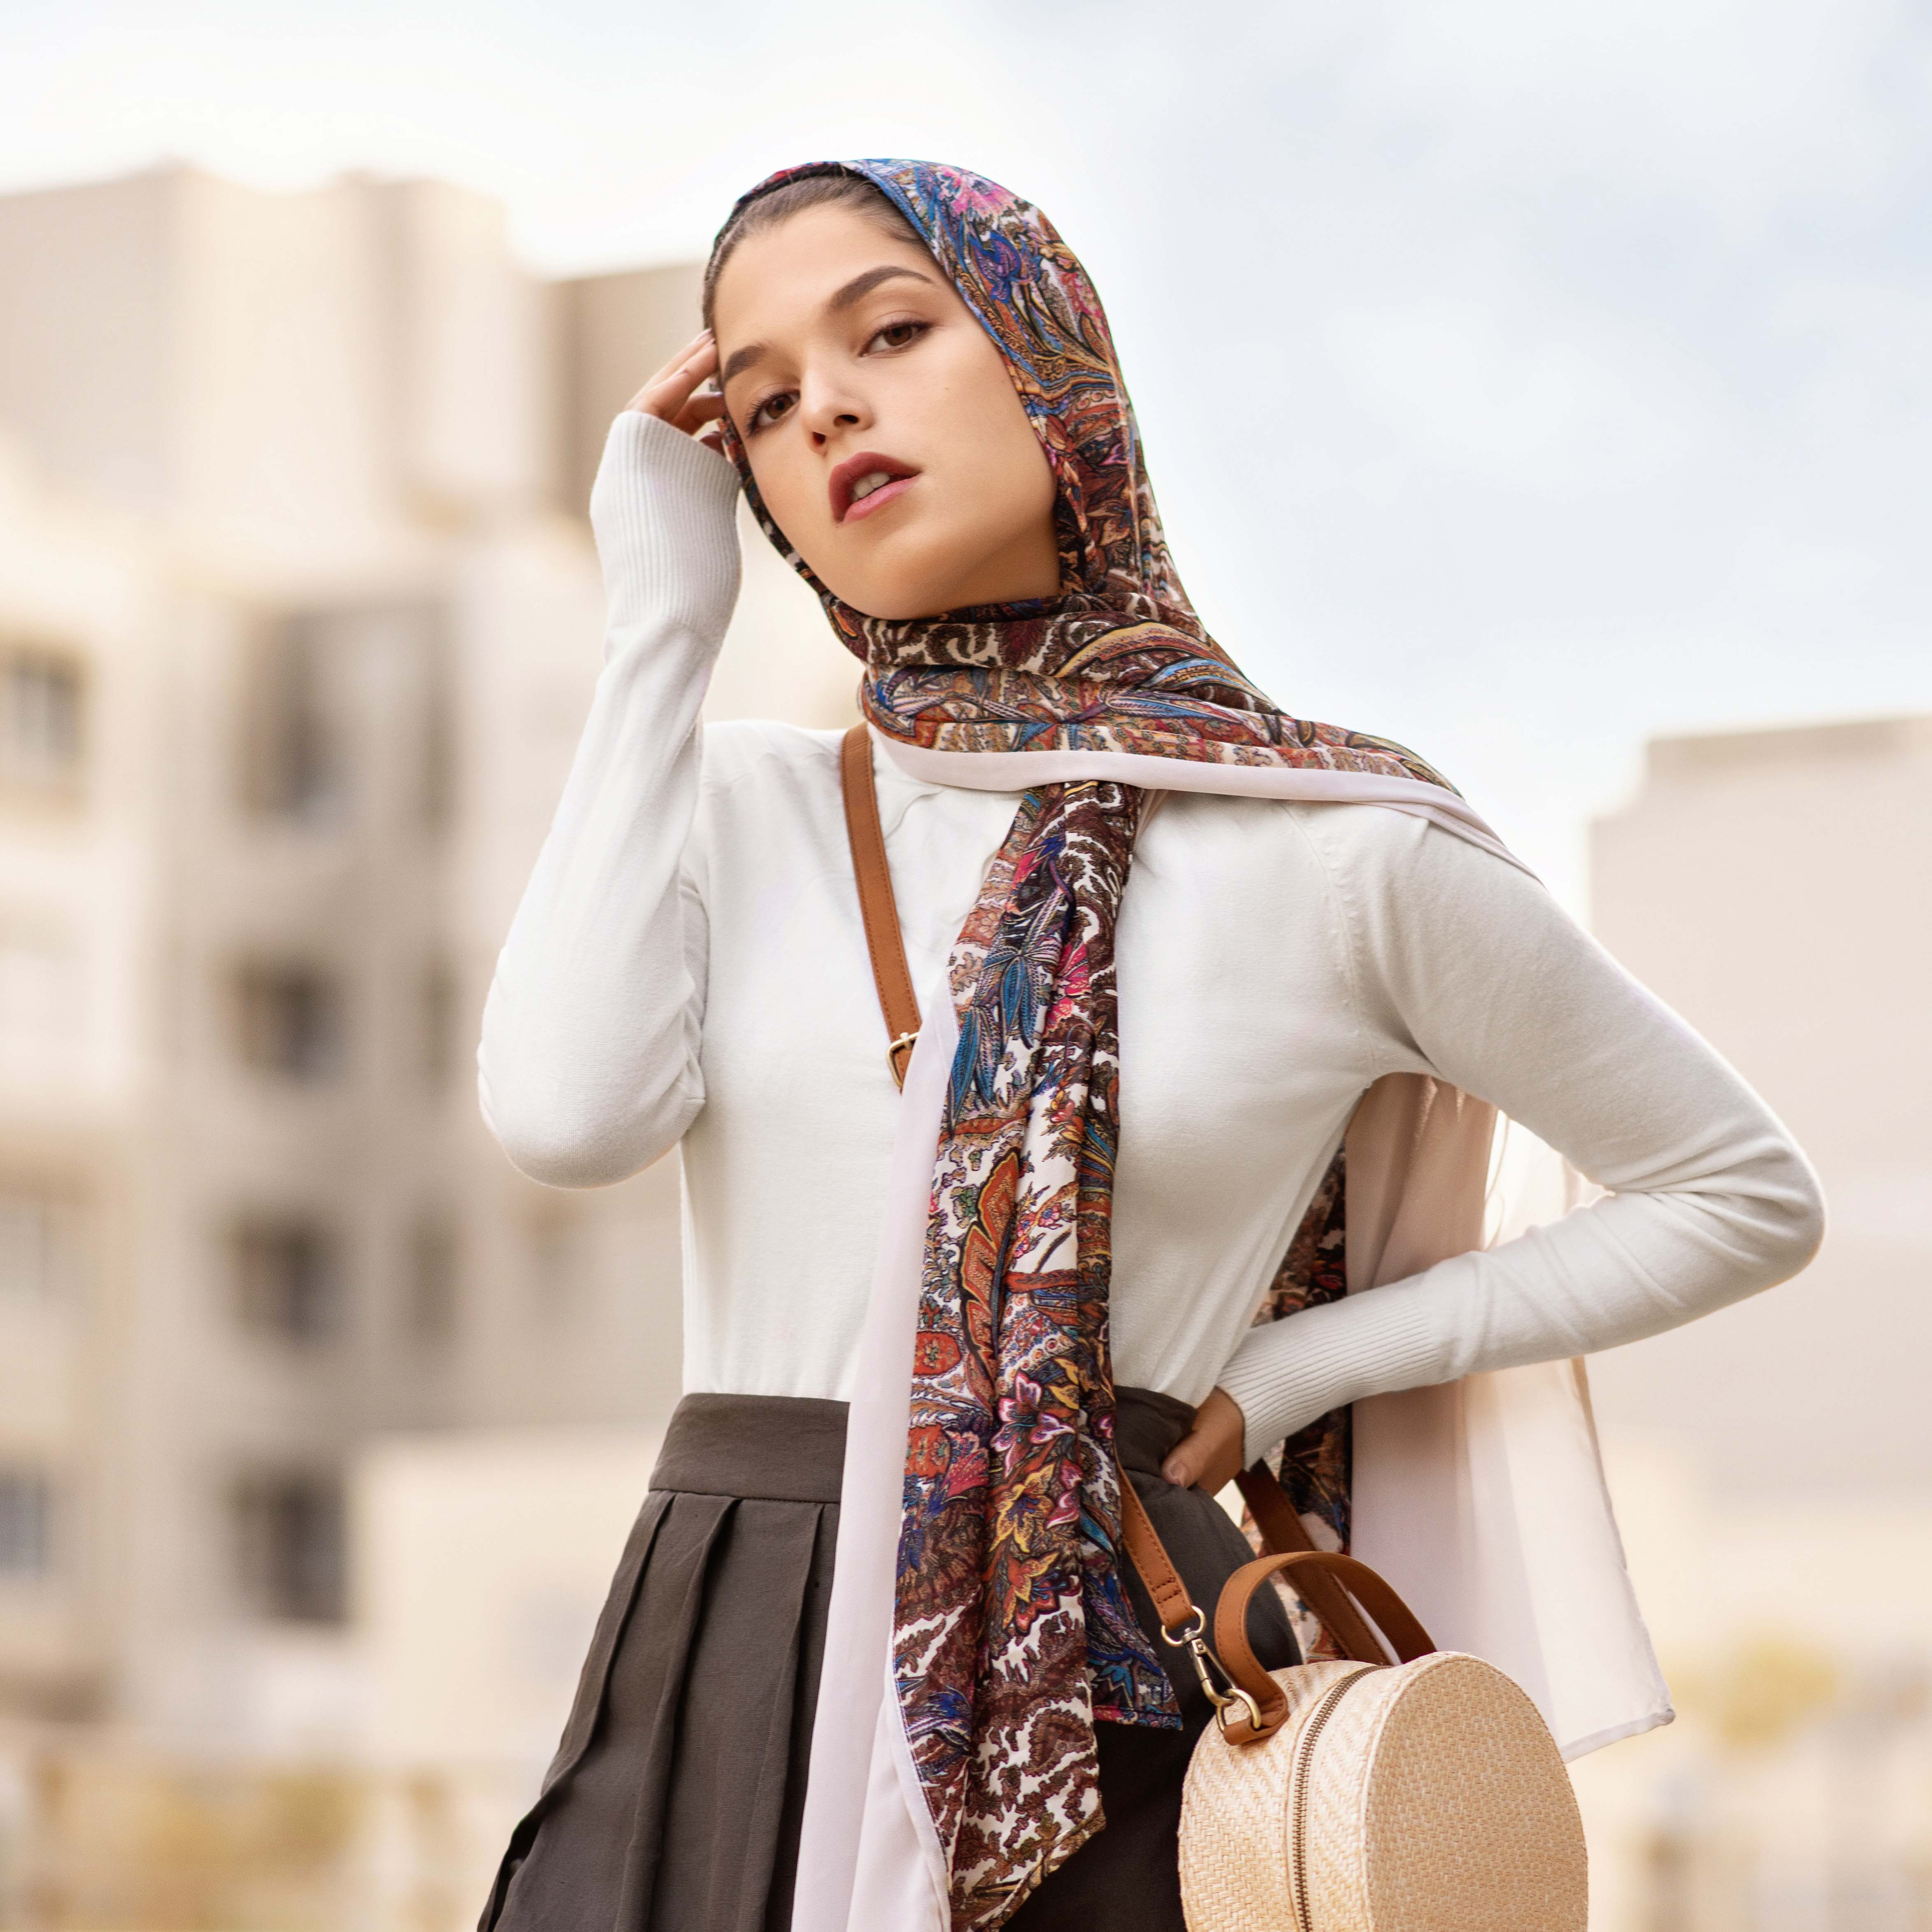 Try wearing a printed hijab